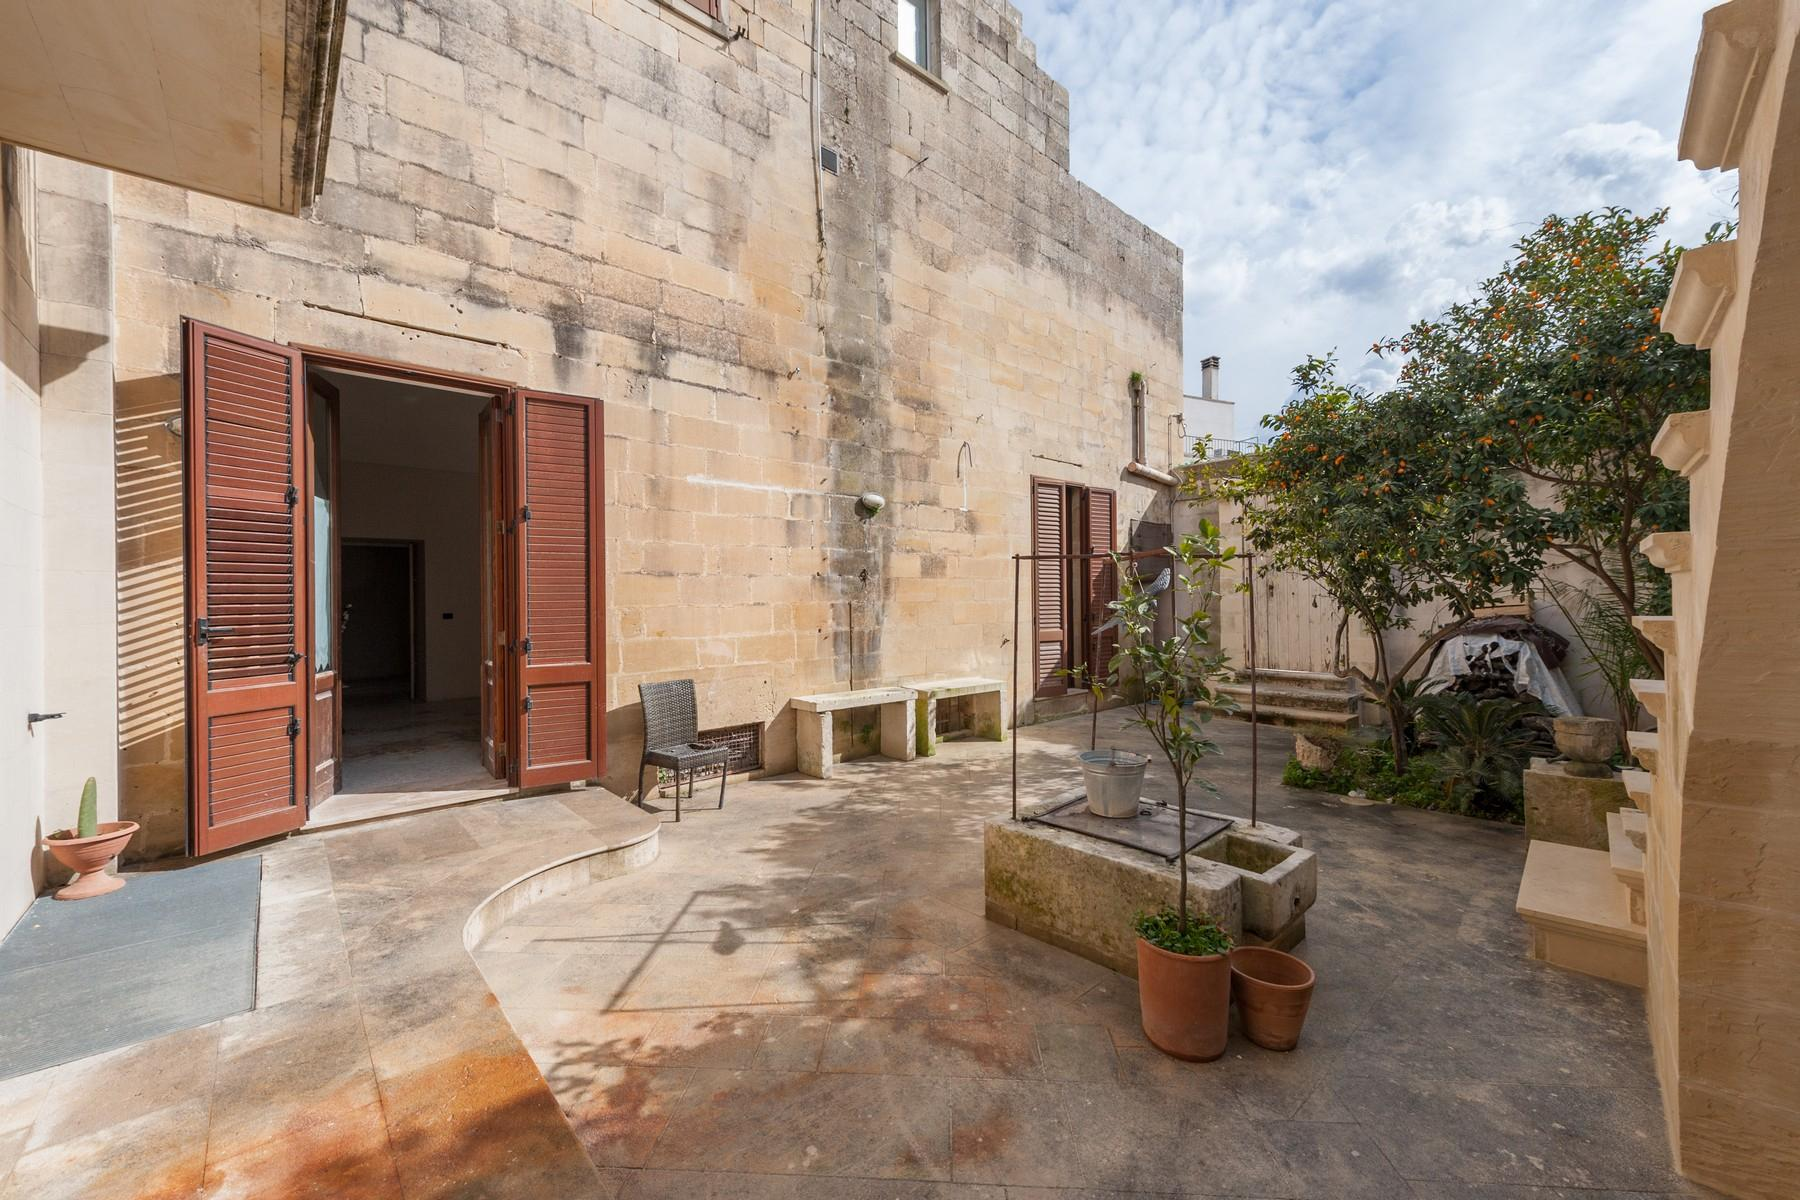 Palazzo Micali, a little gem in Salento - 31